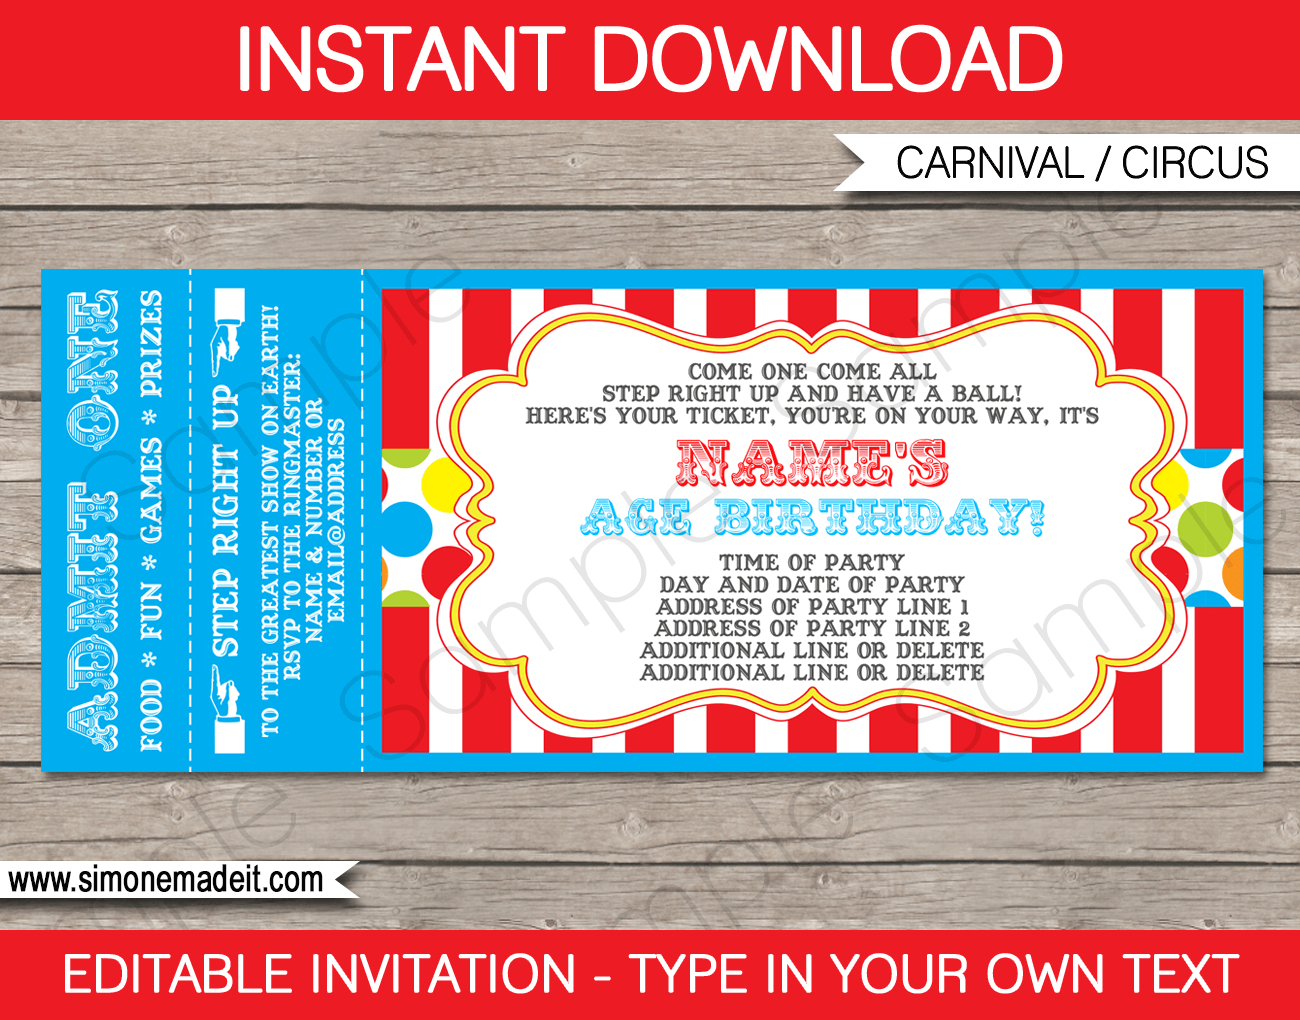 Carnival Party Ticket Invitation Template | Carnival Or Circus - Free Printable Baseball Ticket Birthday Invitations